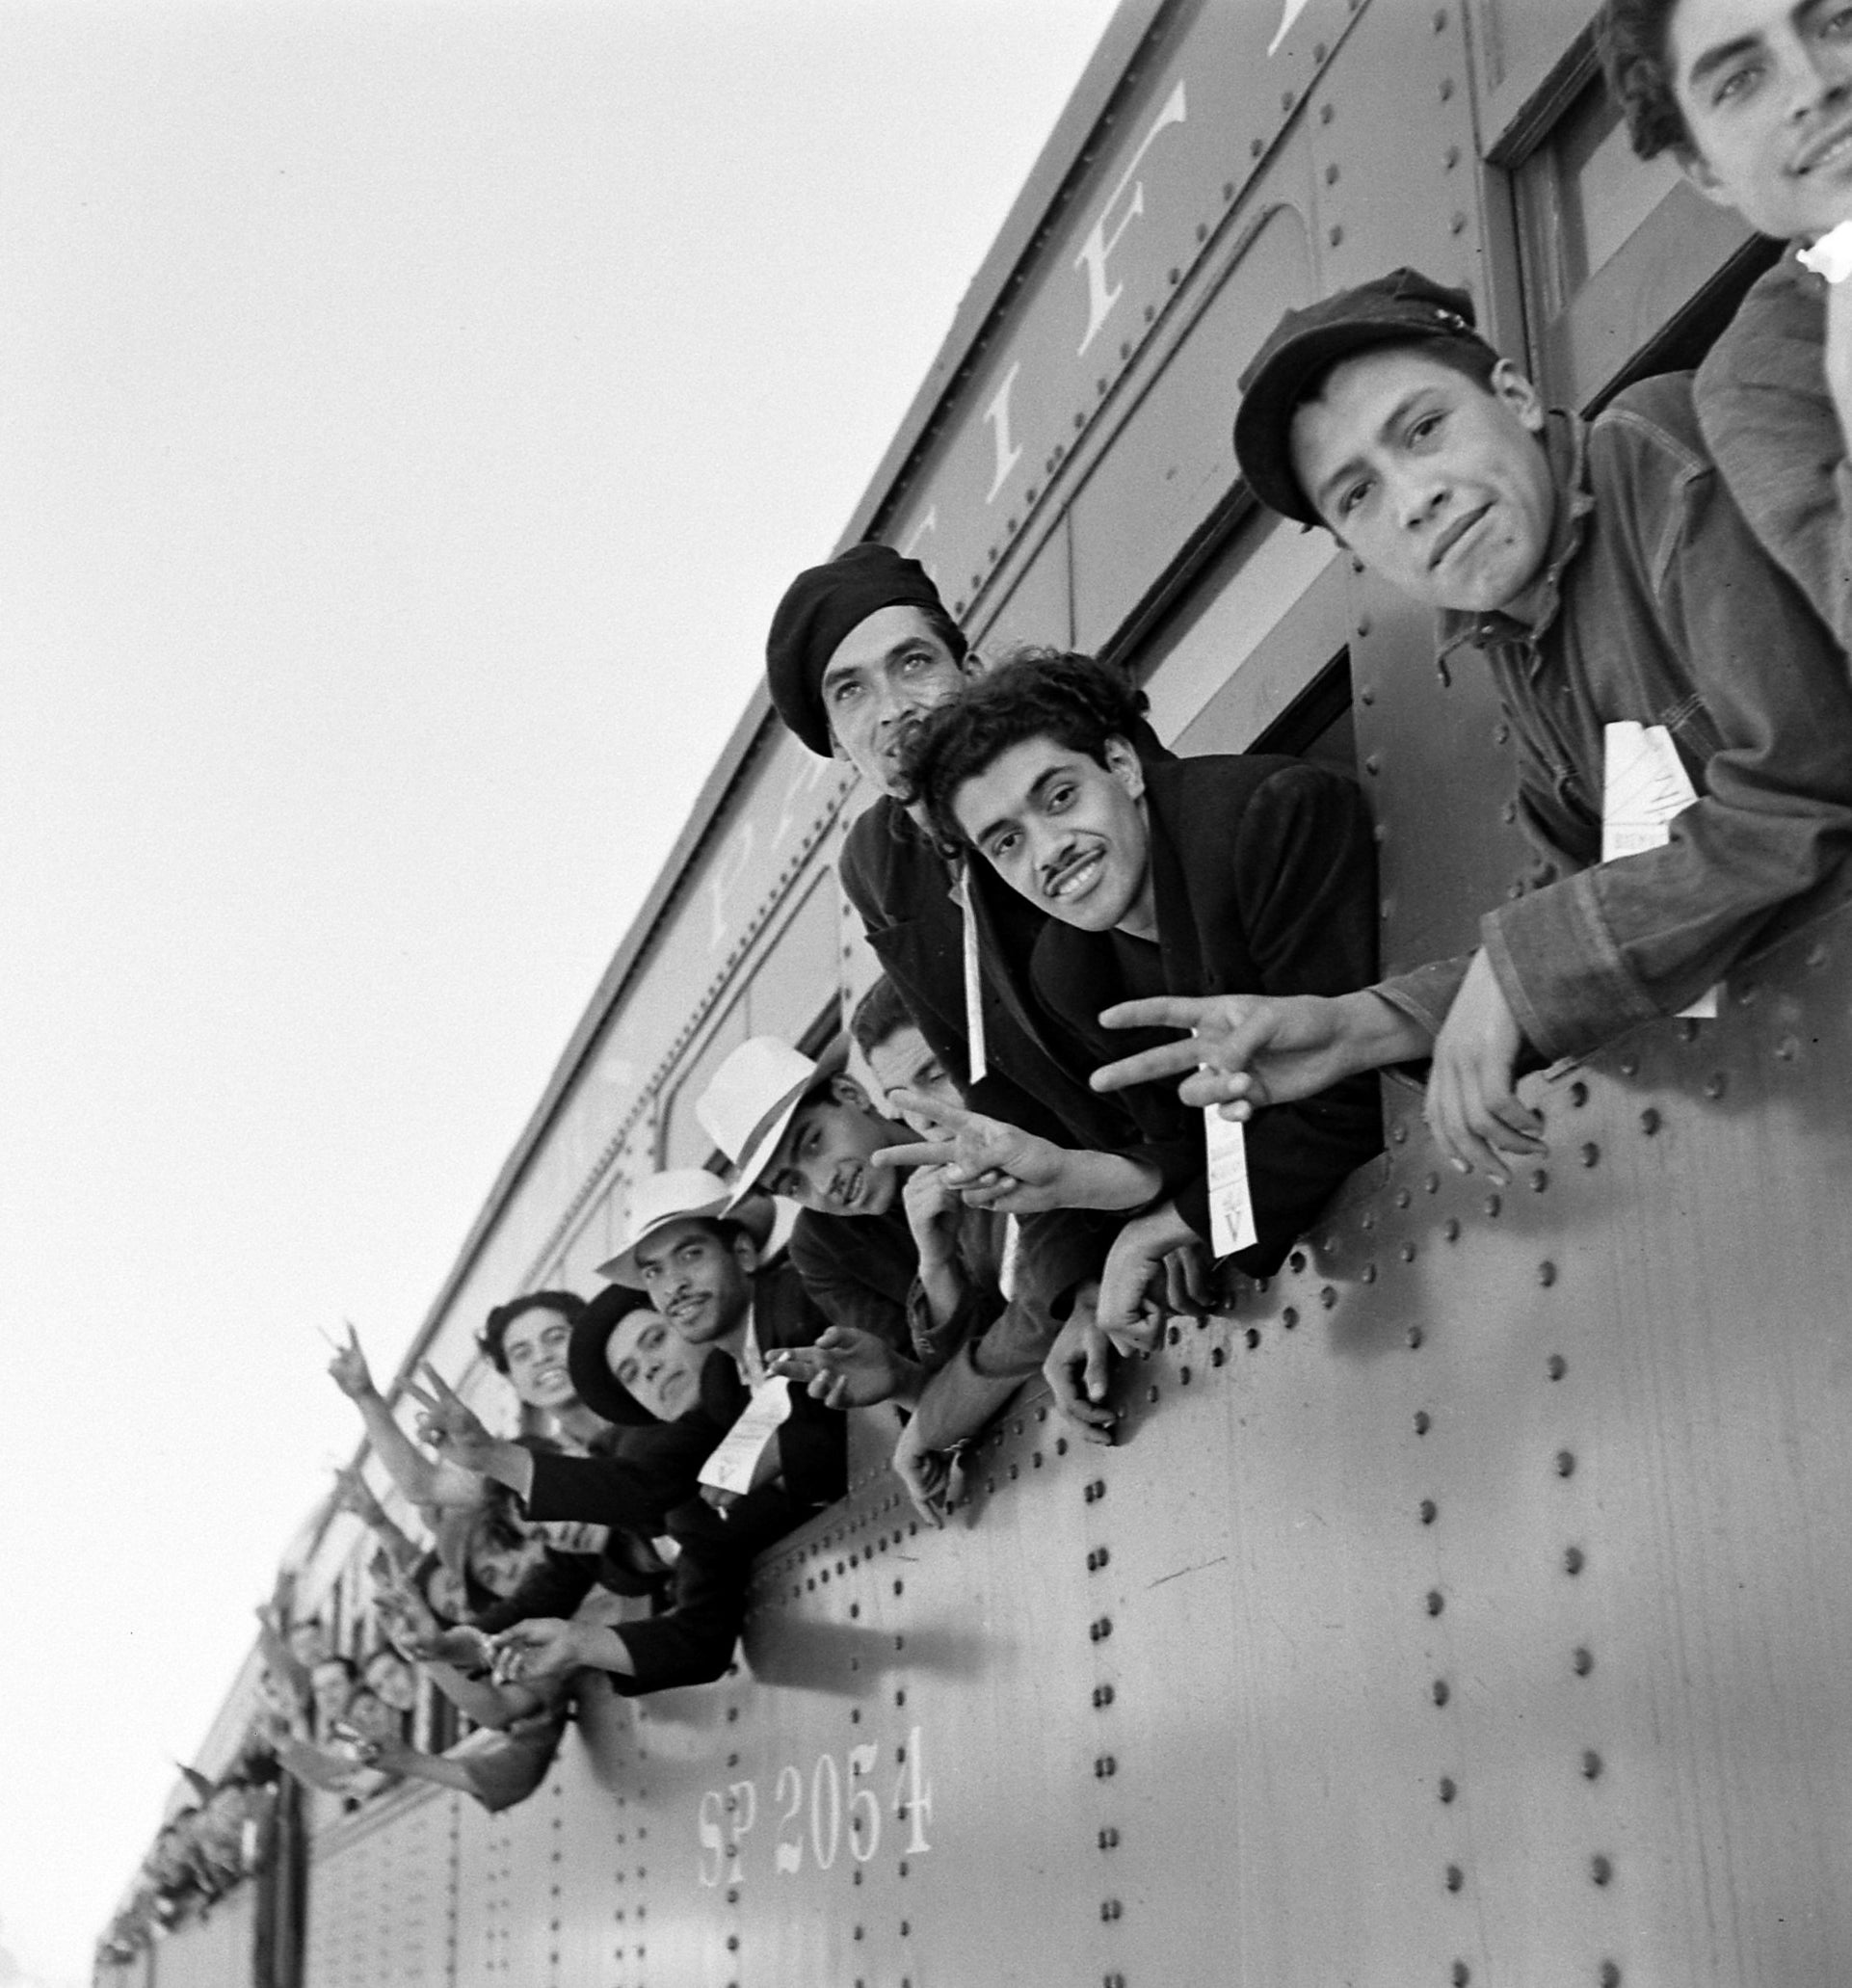 Mexican laborers from the Bracero Program leaning out the windows of a train